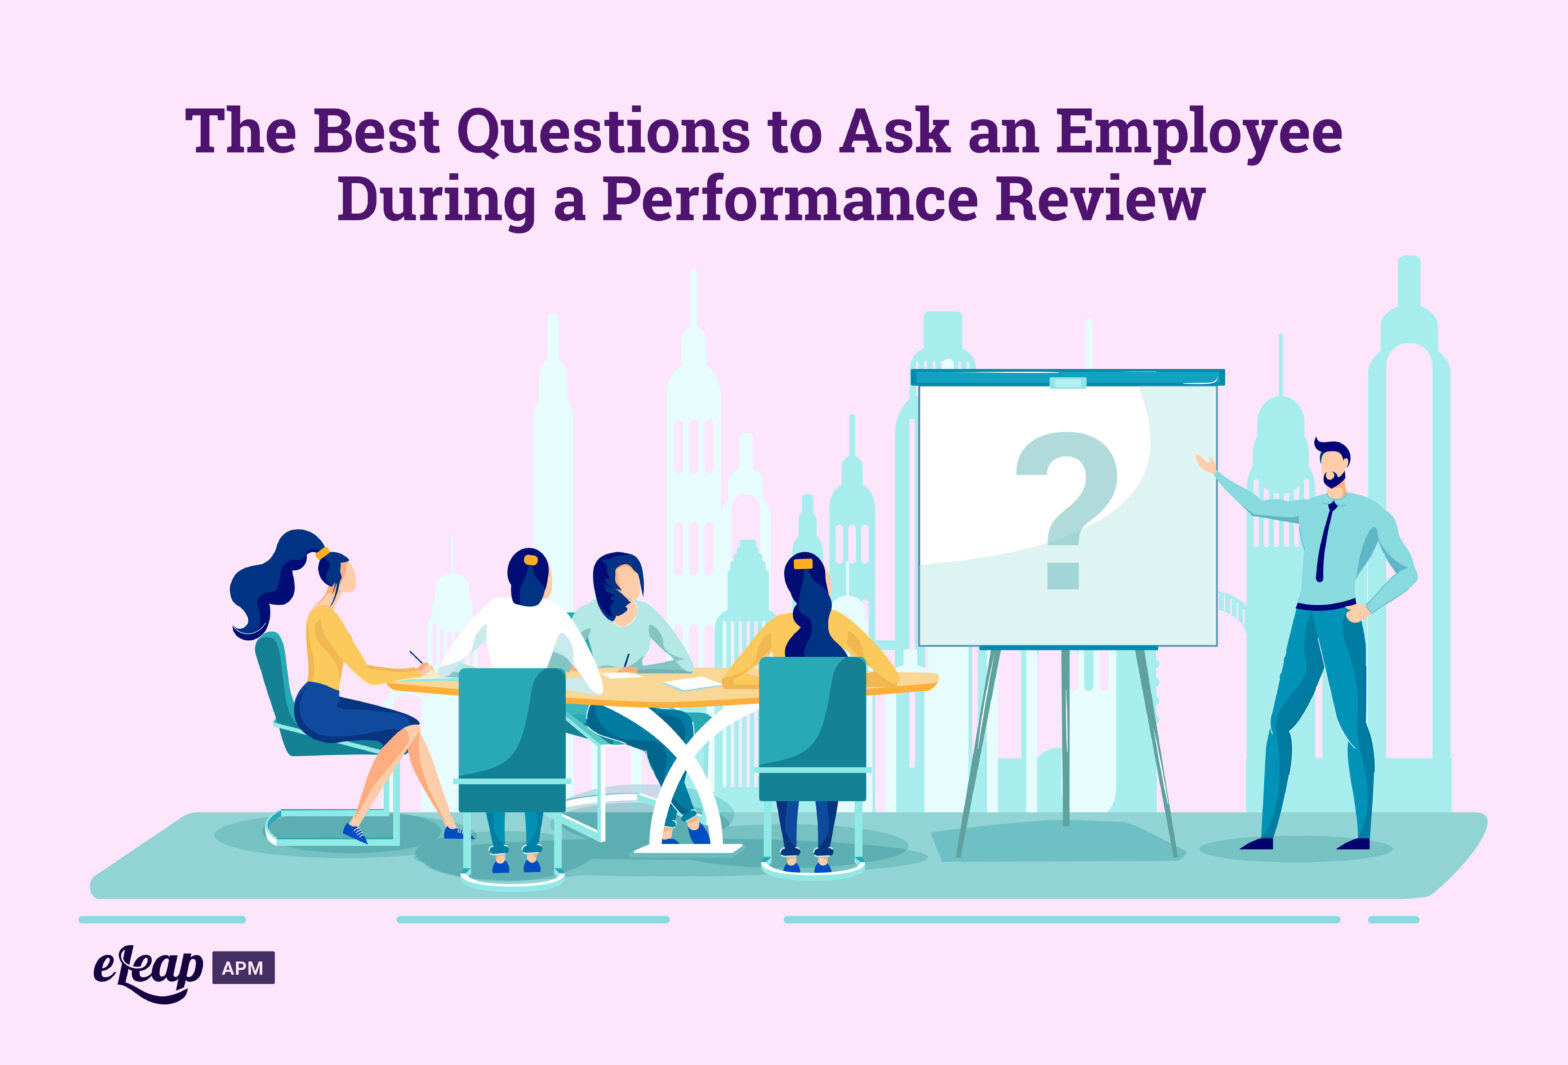 The Best Questions to Ask an Employee During a Performance Review